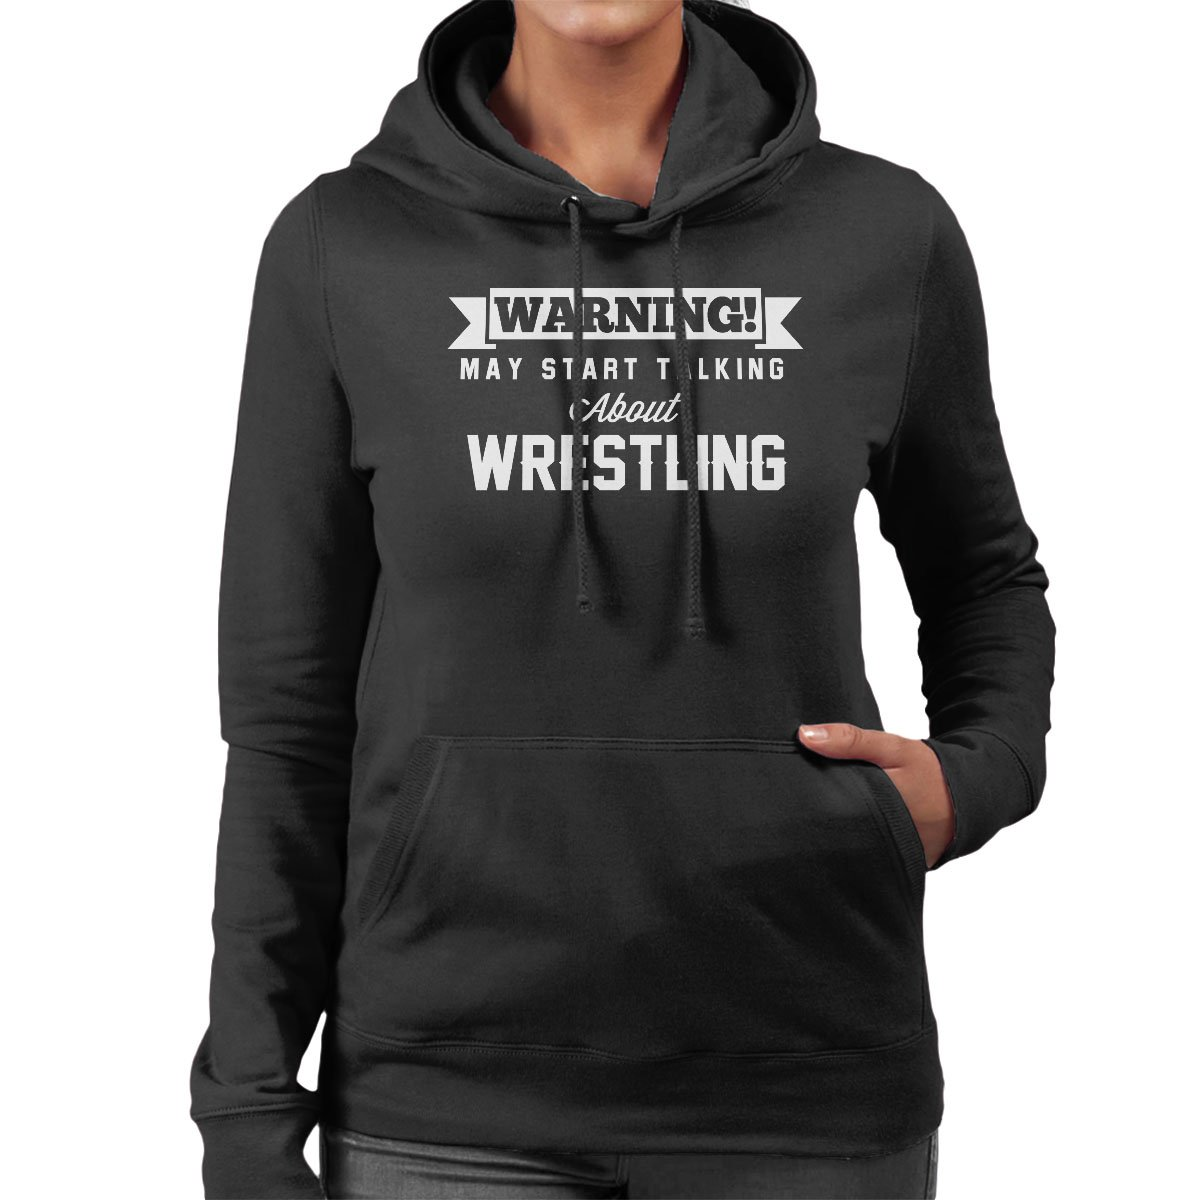 Warning May Start Talking About Wrestling Women's Hooded Sweatshirt by Coto7